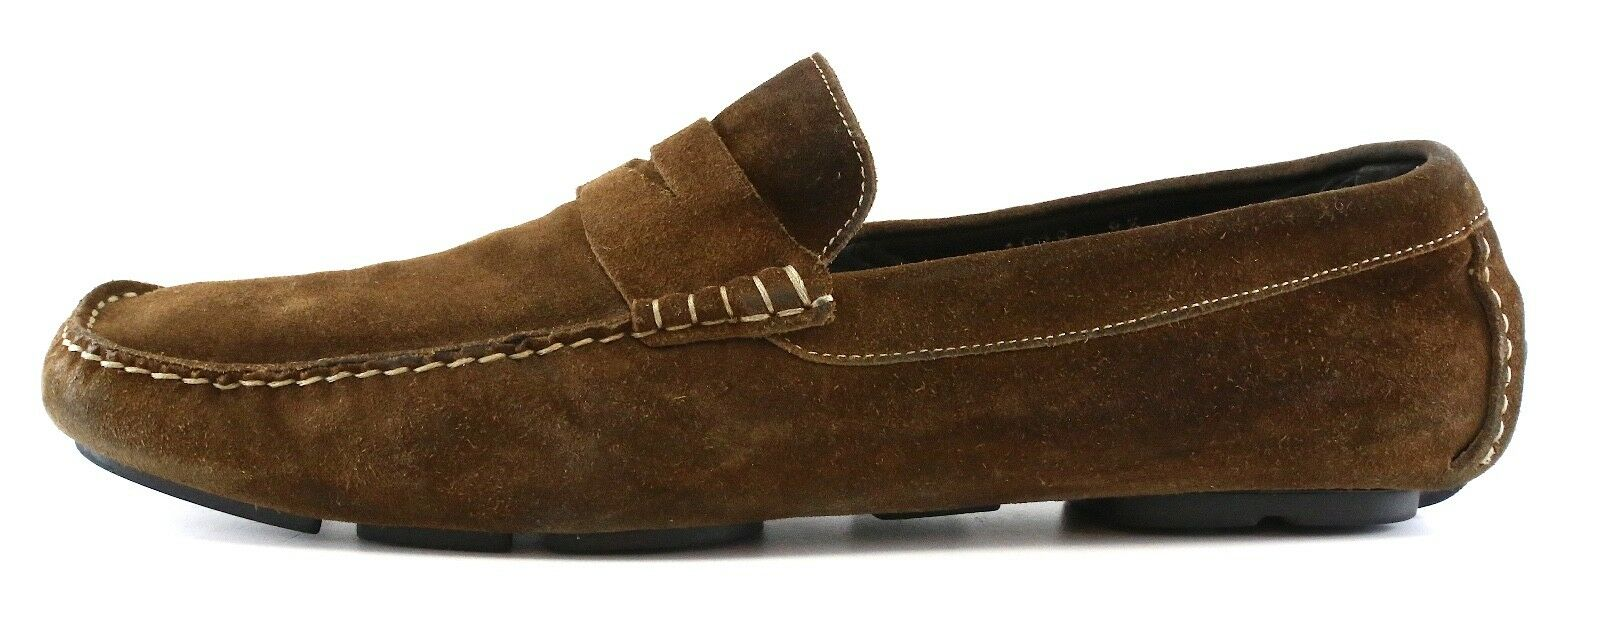 To Boot New York Slip On Suede Penny Loafers Brown Men Sz 8.5 1056